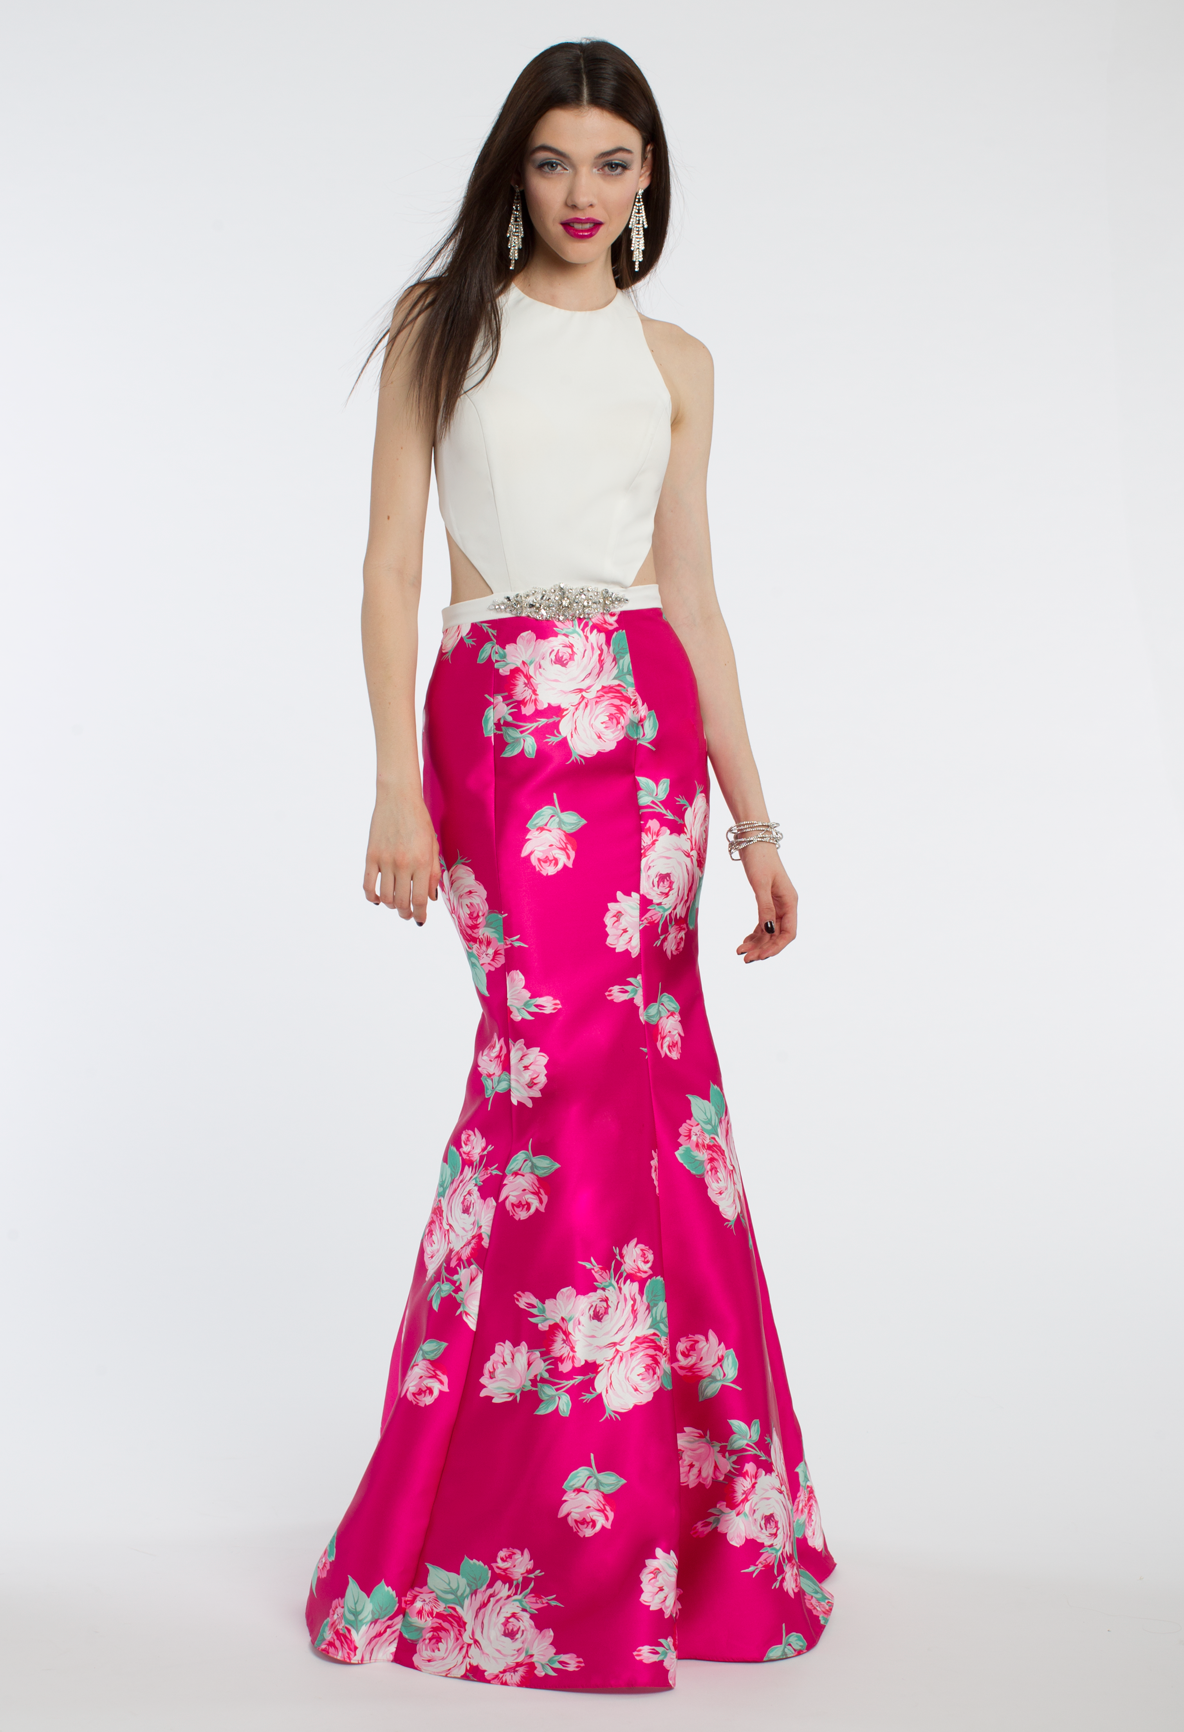 Two piece wedding guest dress  Prepare for a posh evening when you wear this vibrant long prom